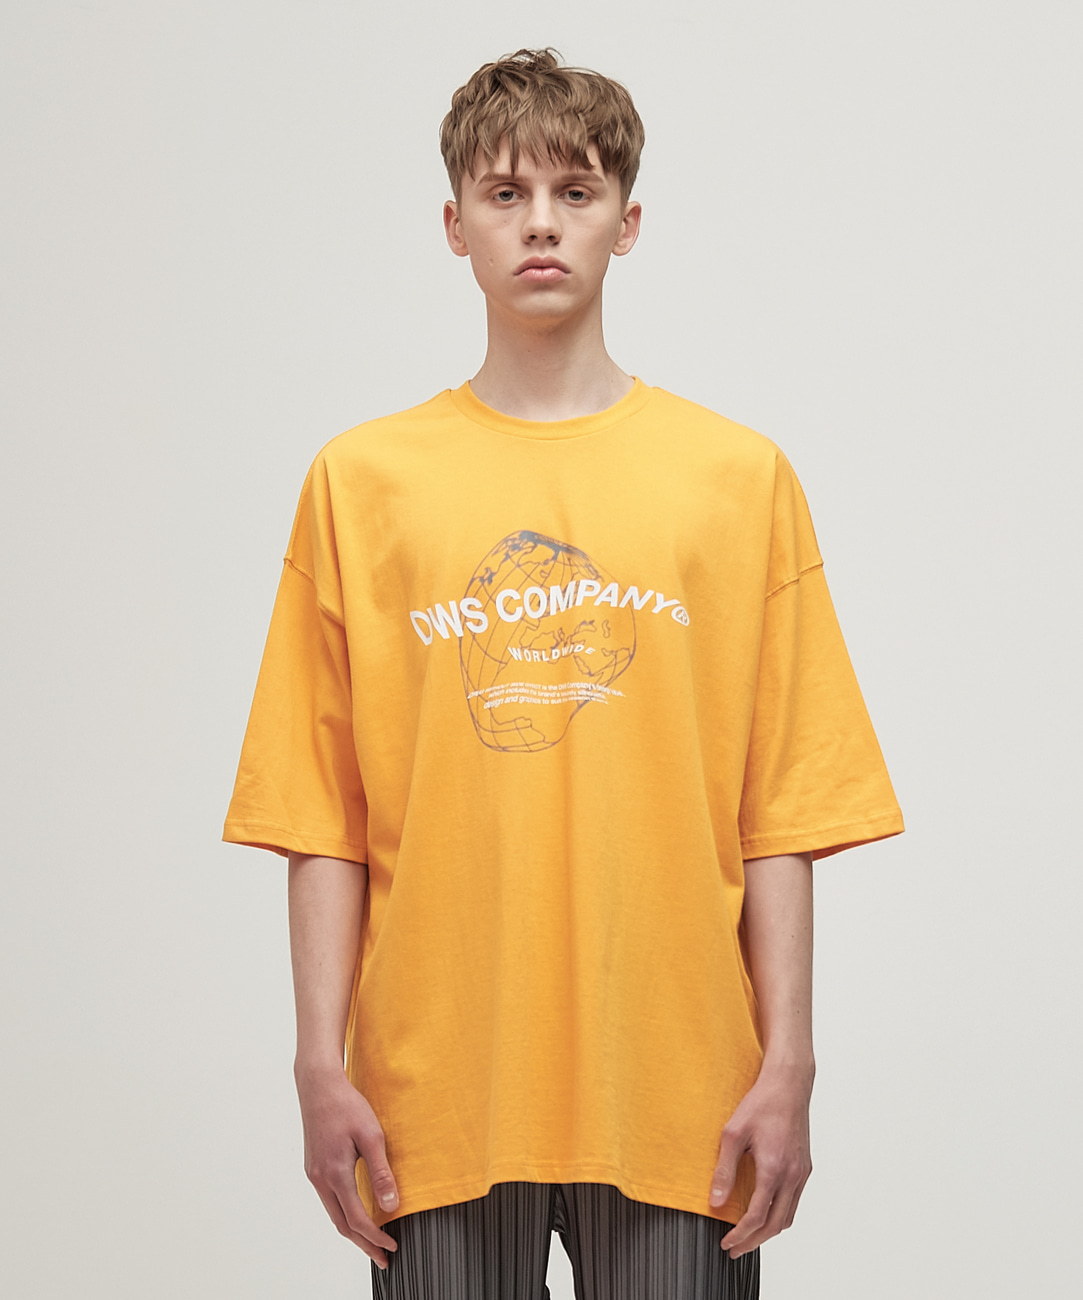 DWS WORLDWIDE T-SHIRT(YELLOW)